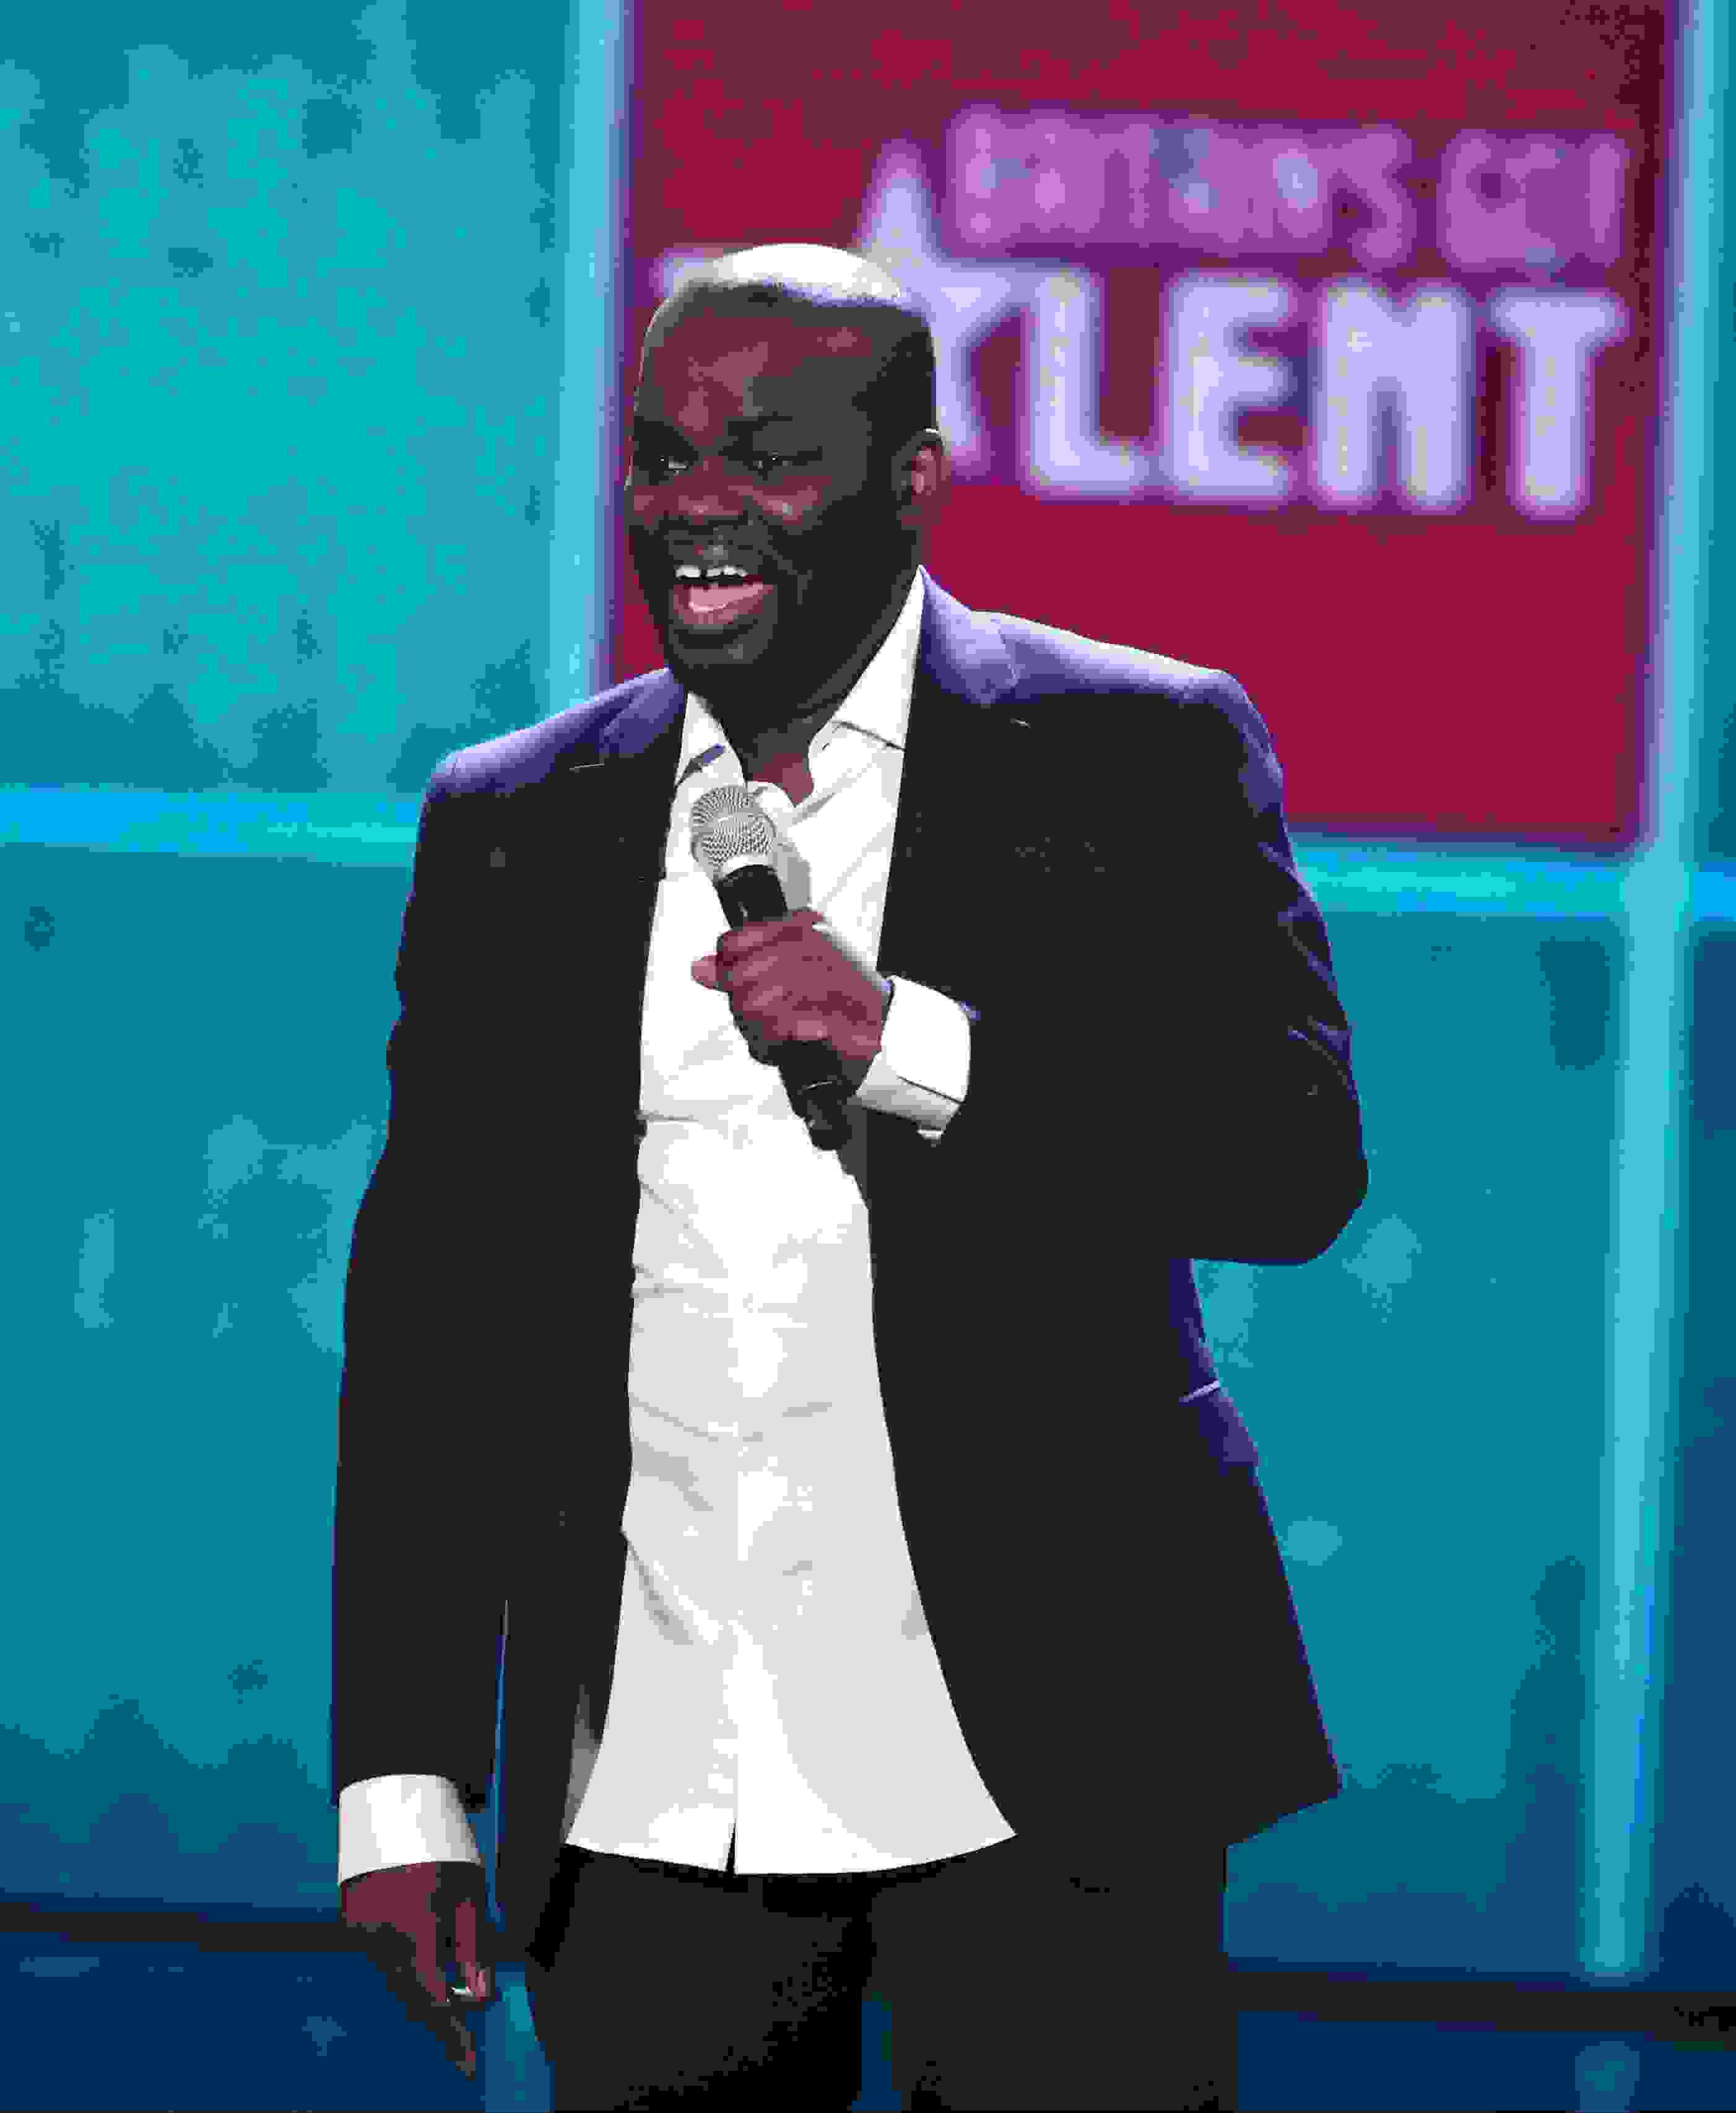 Daliso Chaponda: What the African Said (SOLD OUT)